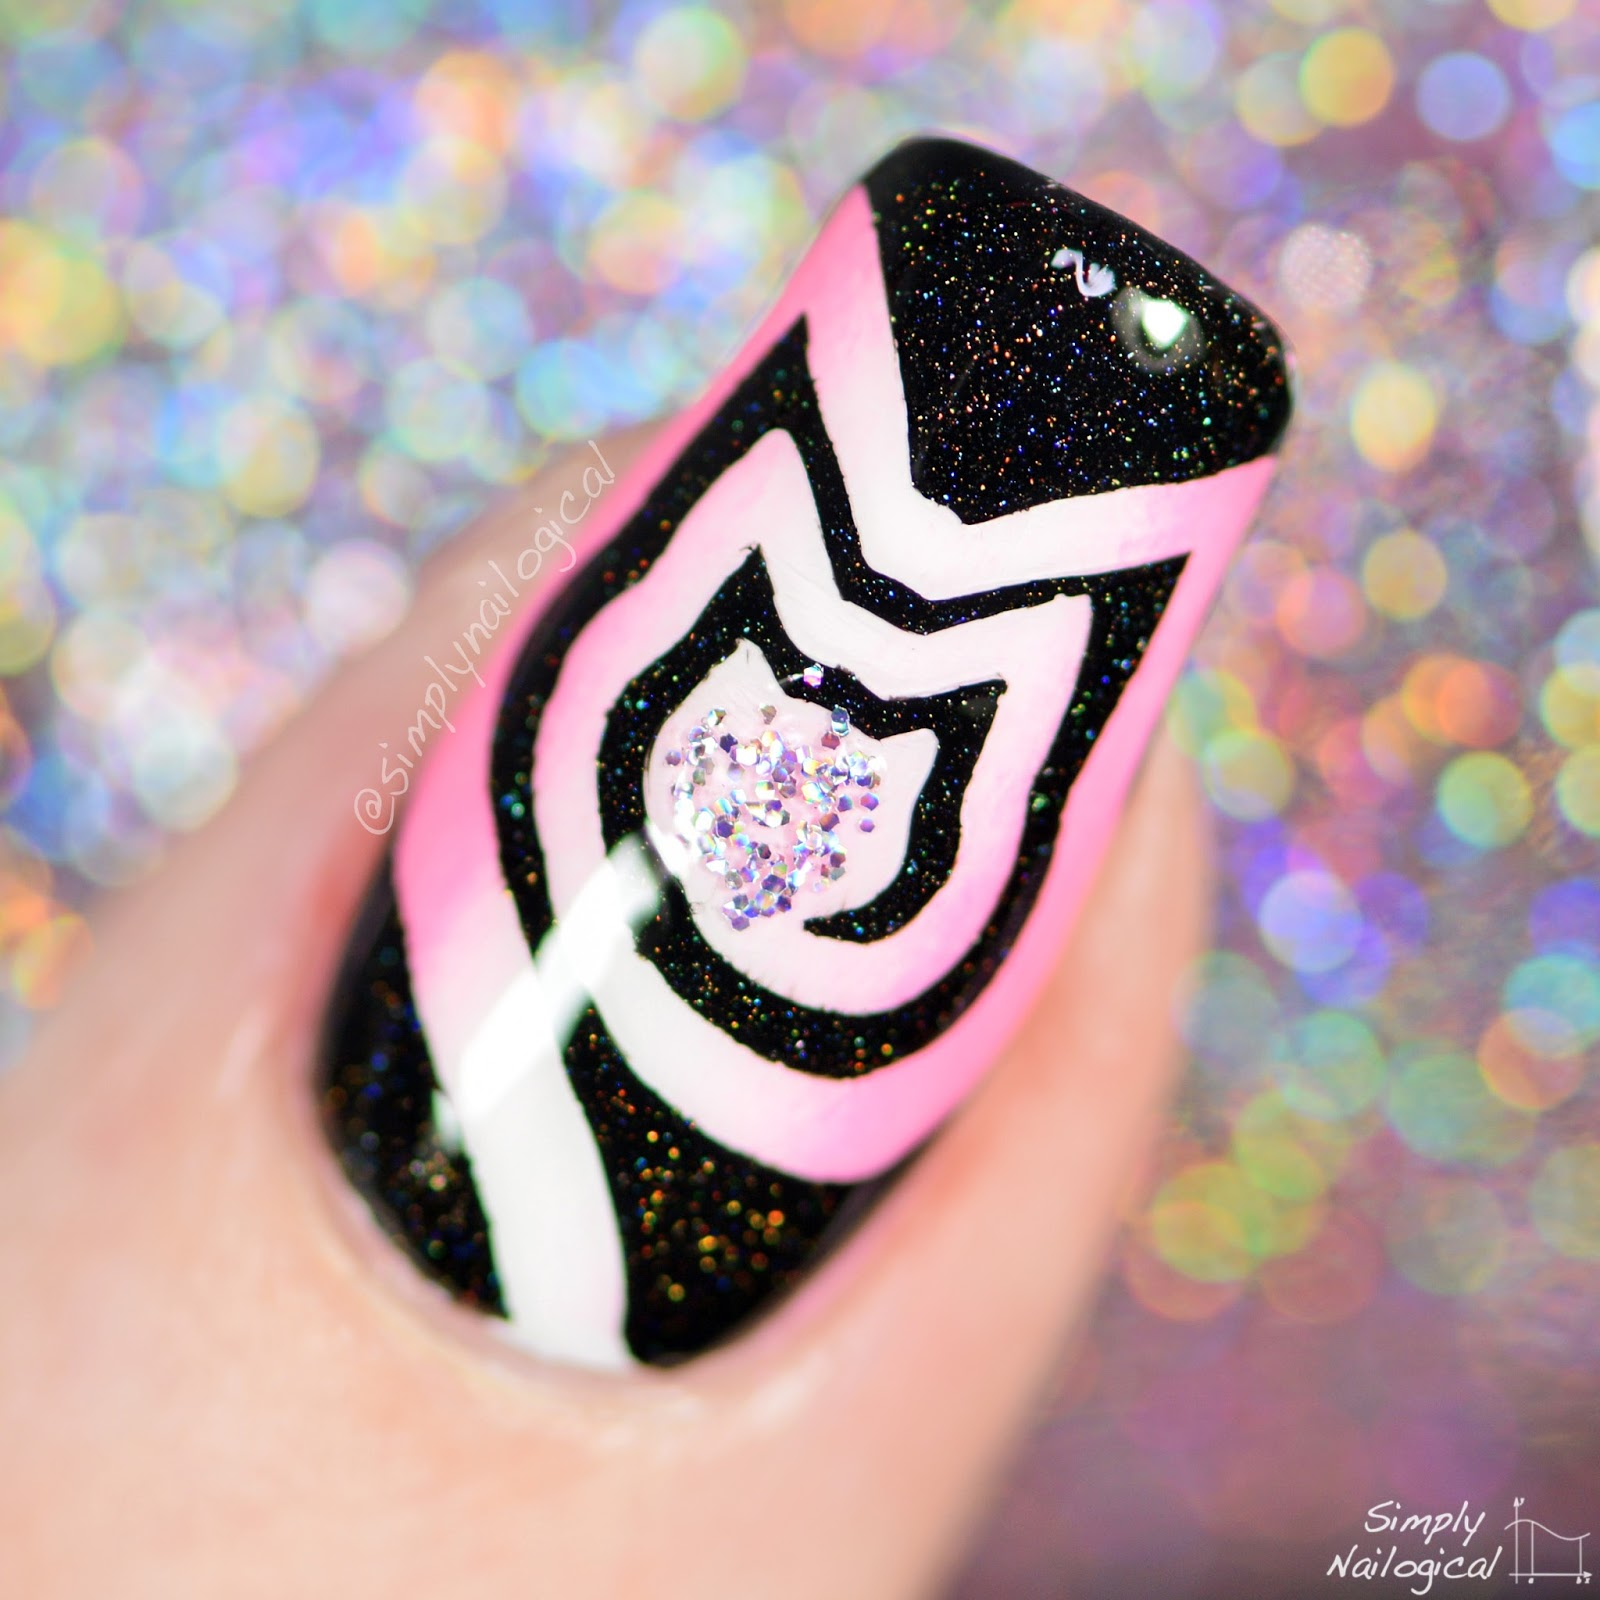 Simply Nailogical: Finally! Cat nail vinyls goals achieved!